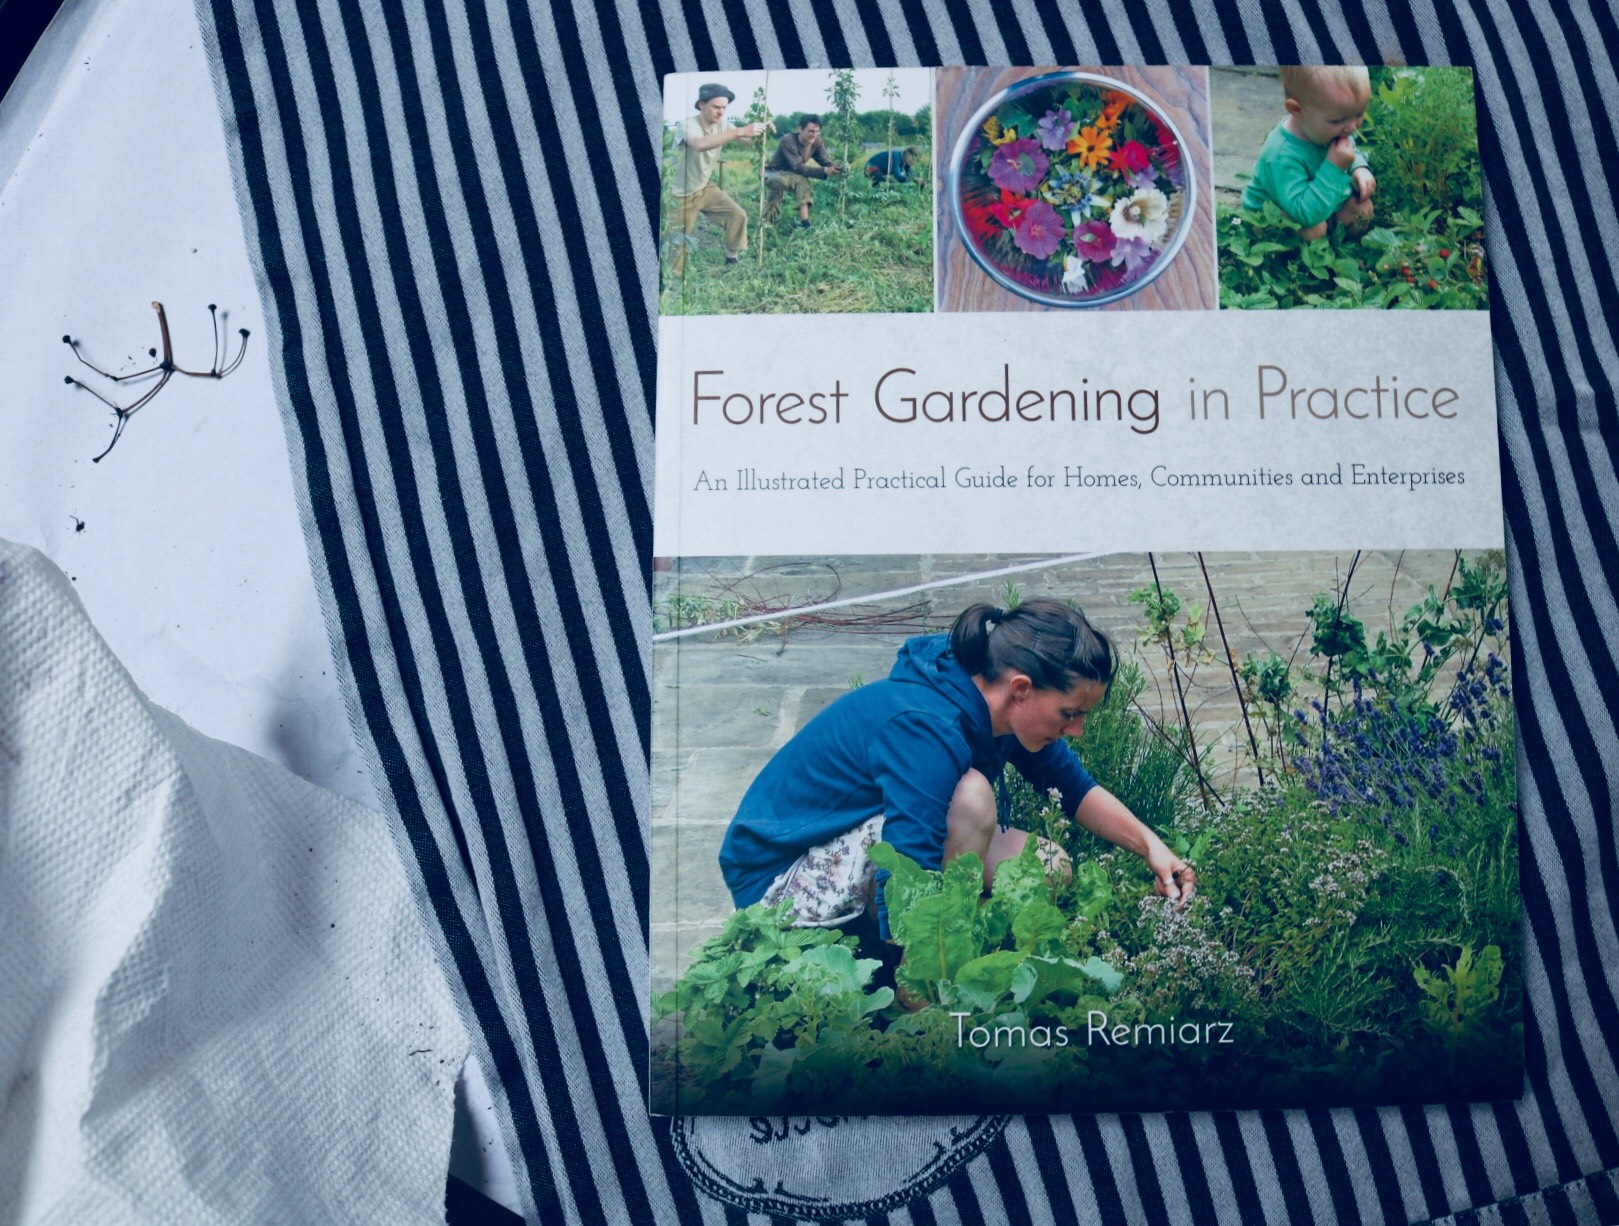 Forest Gardening in Practice, Tomas Remiarz